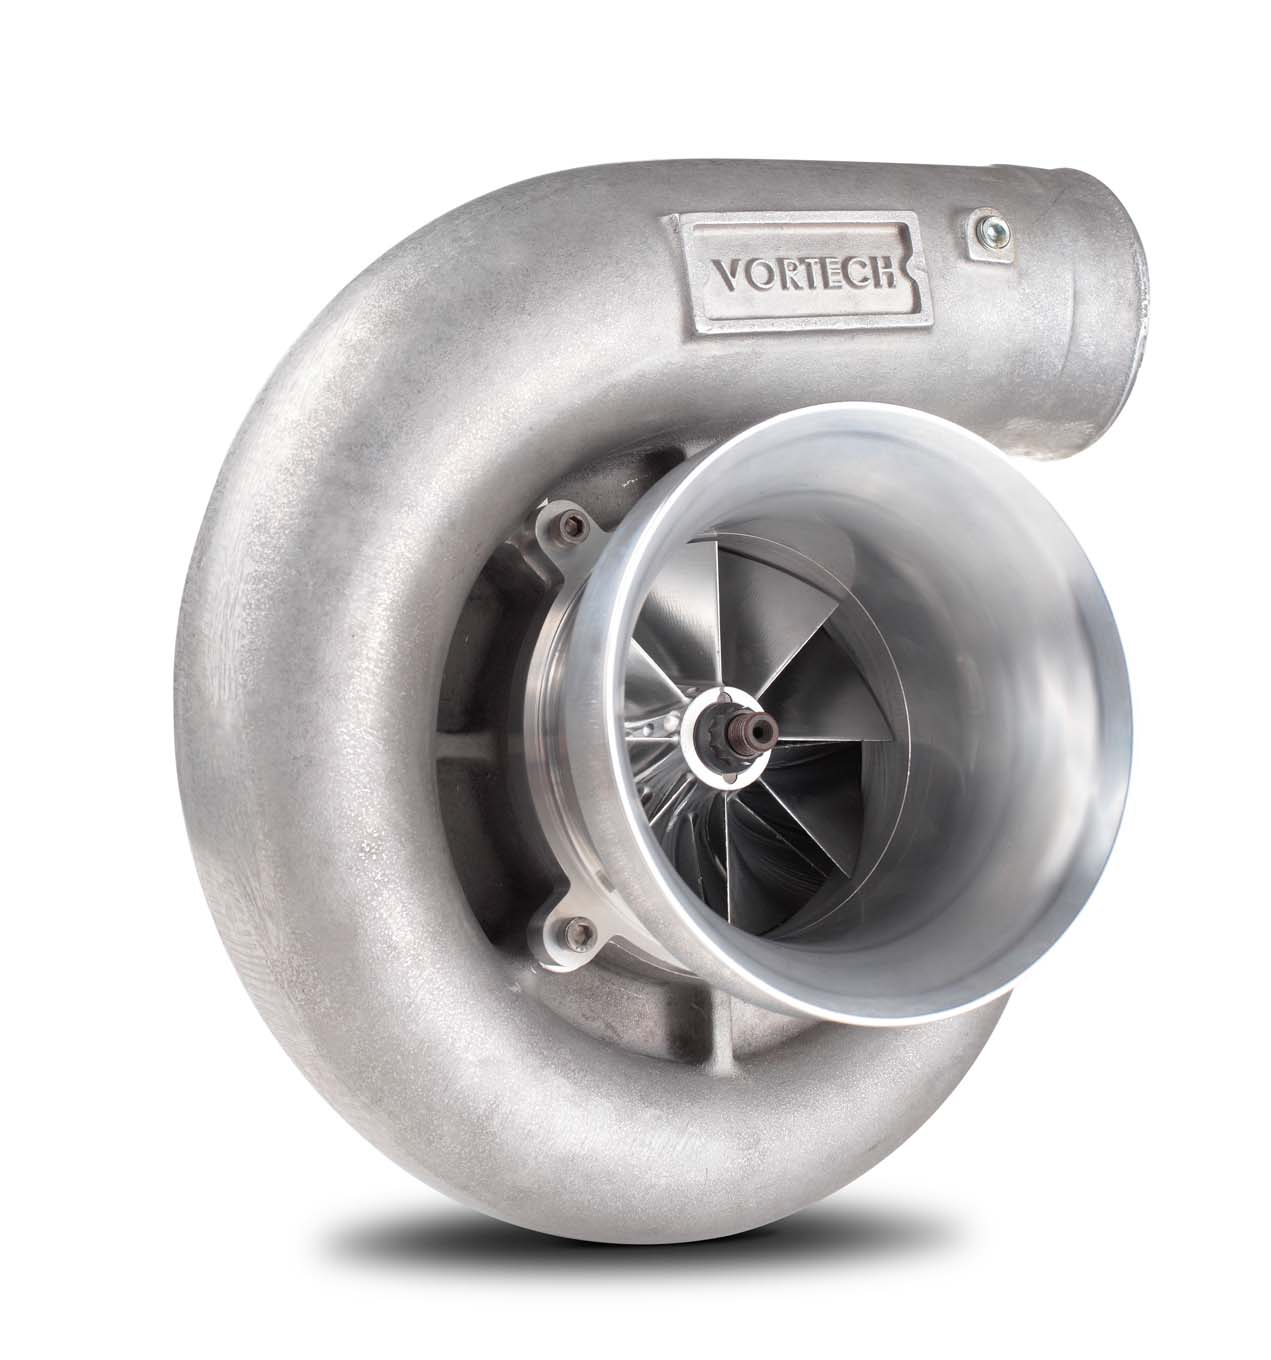 Roots Or Centrifugal Supercharger: All Your Centrifugal Supercharger Questions Answered